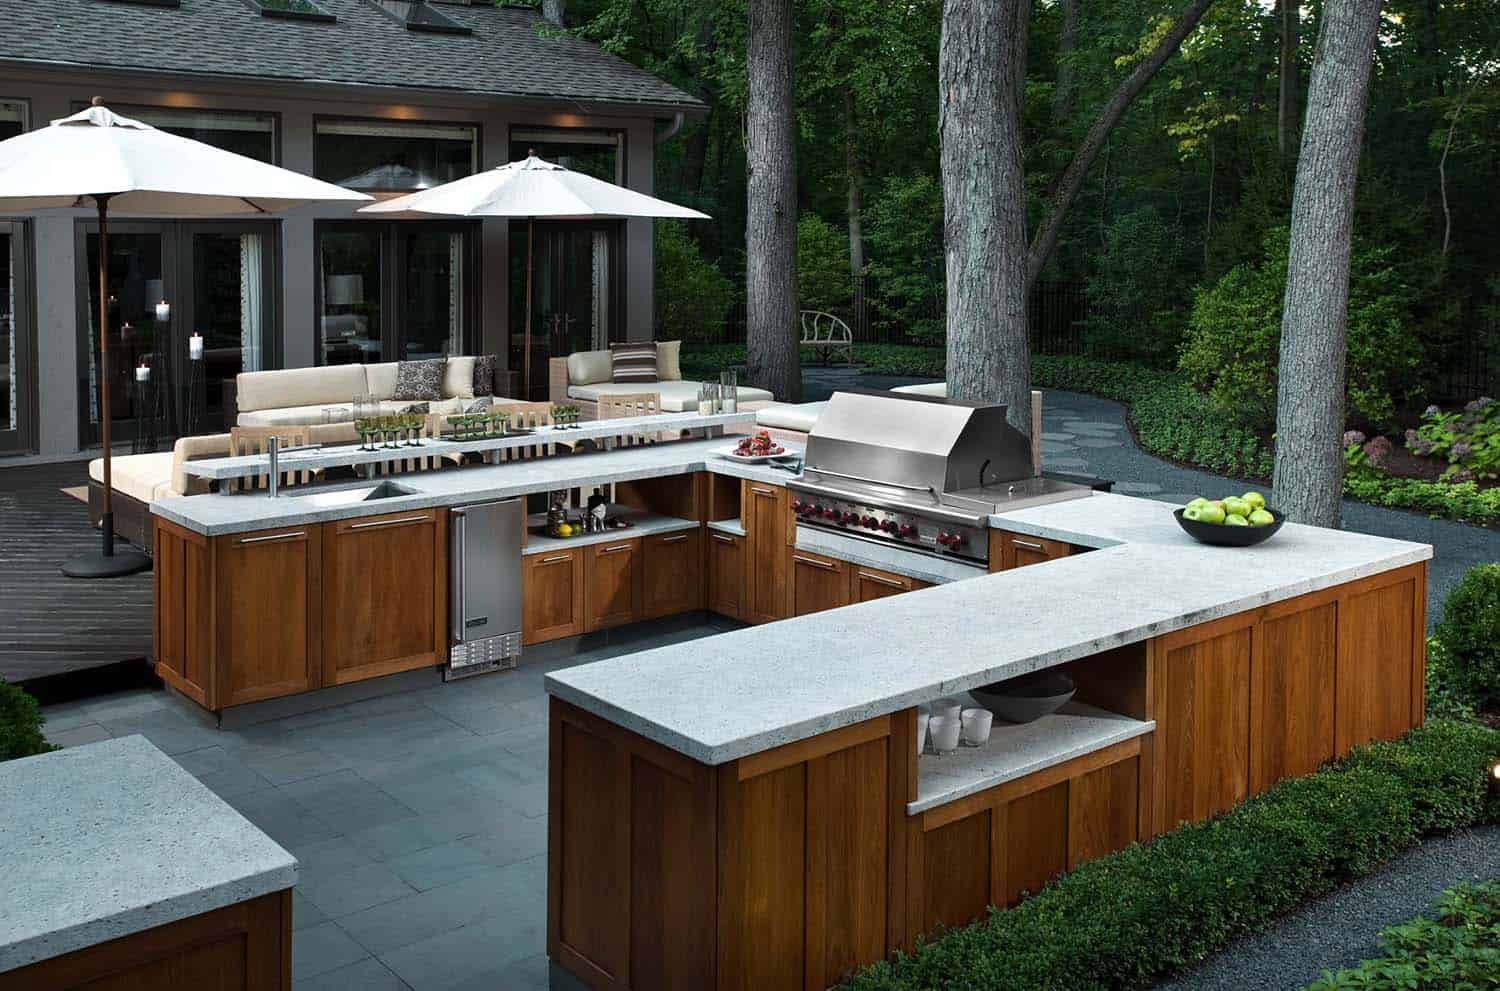 photos of outdoor kitchens and bars lowes white kitchen sink 20 43 spectacular with for entertaining